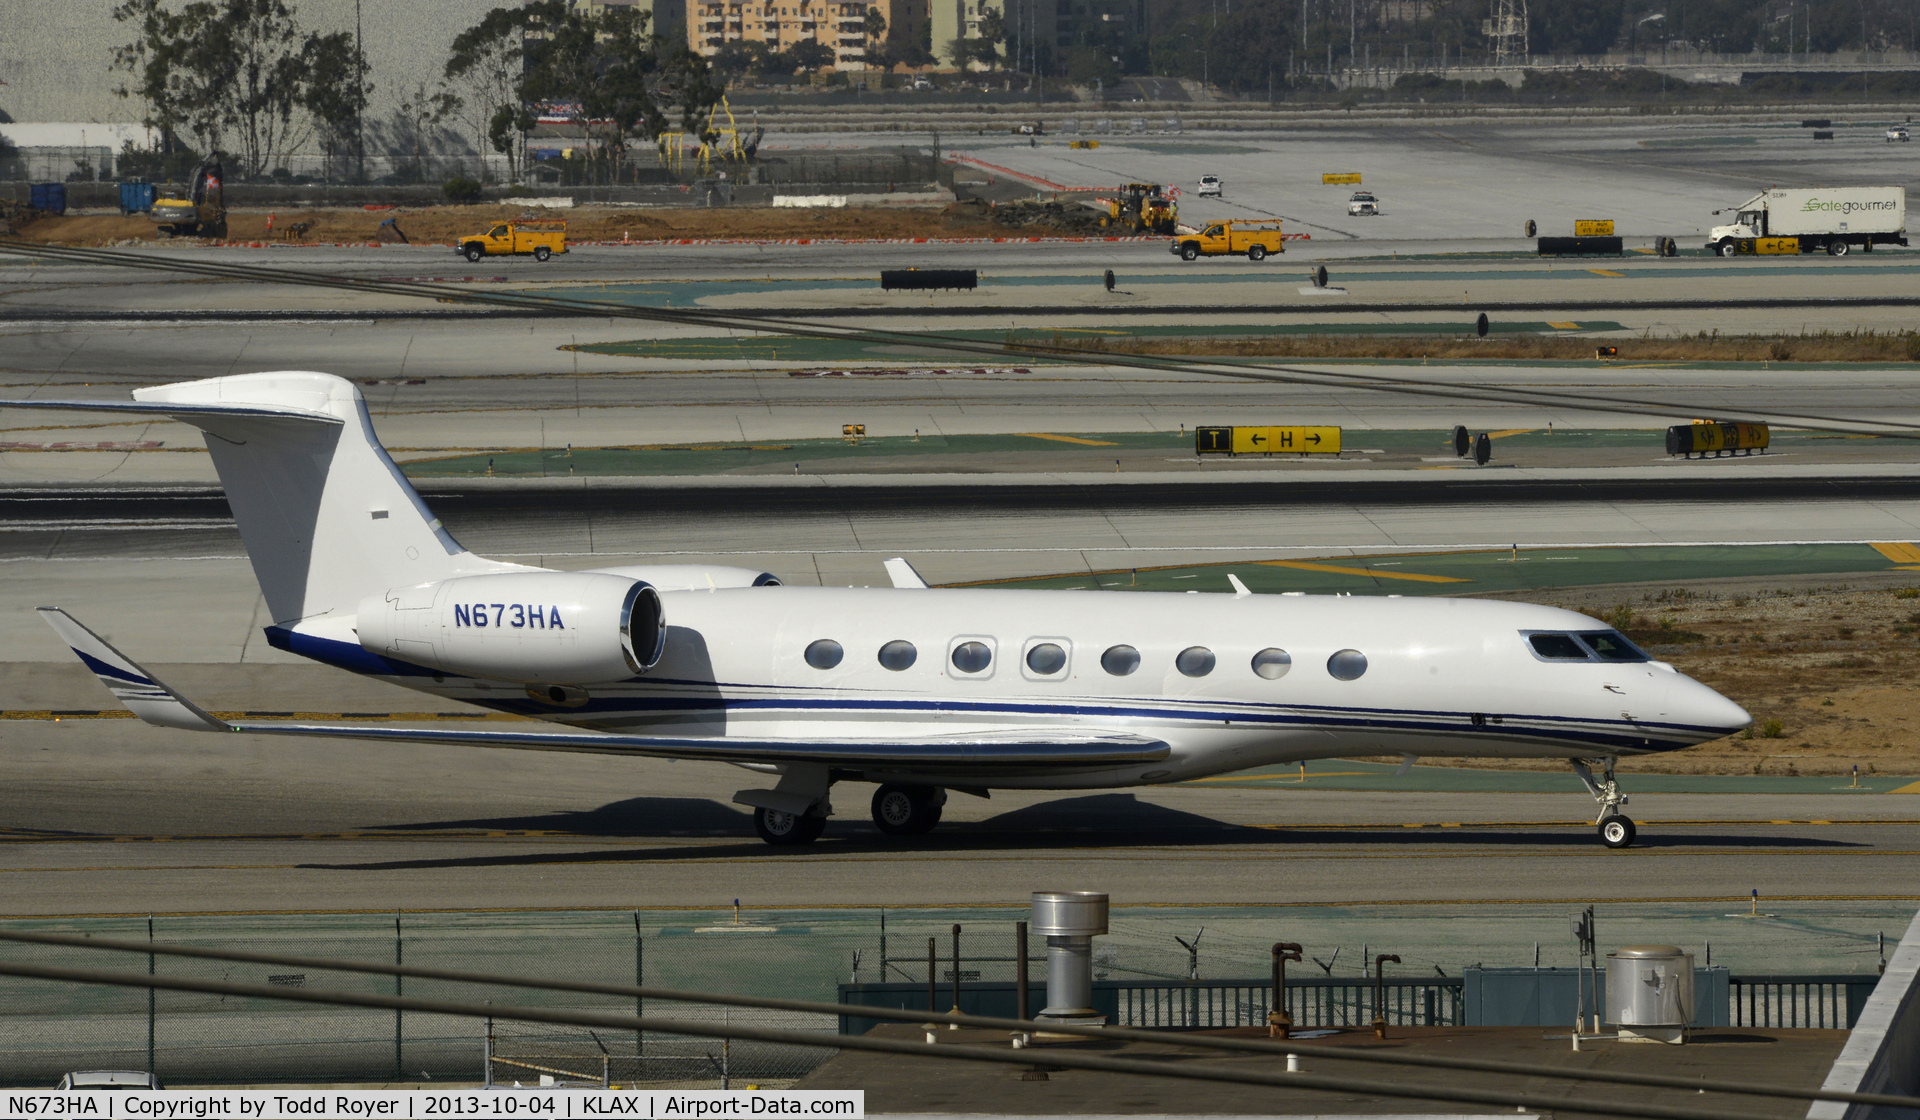 N673HA, 2013 Gulfstream Aerospace G650 (G-VI) C/N 6018, Taxiing to parking at LAX